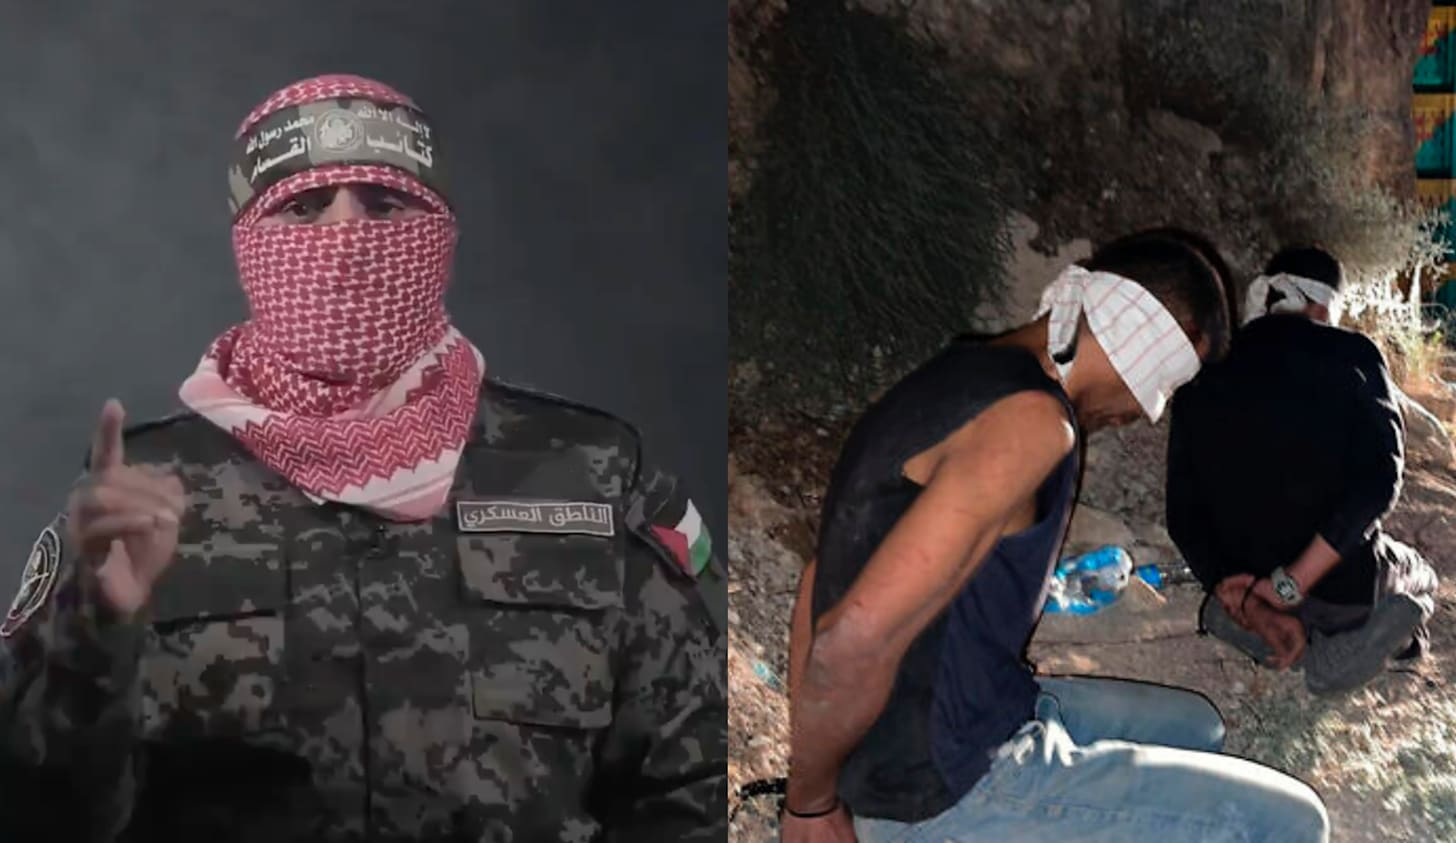 Collage: man in military fagitues with a scarf covering his face; two men bound and blindfolded